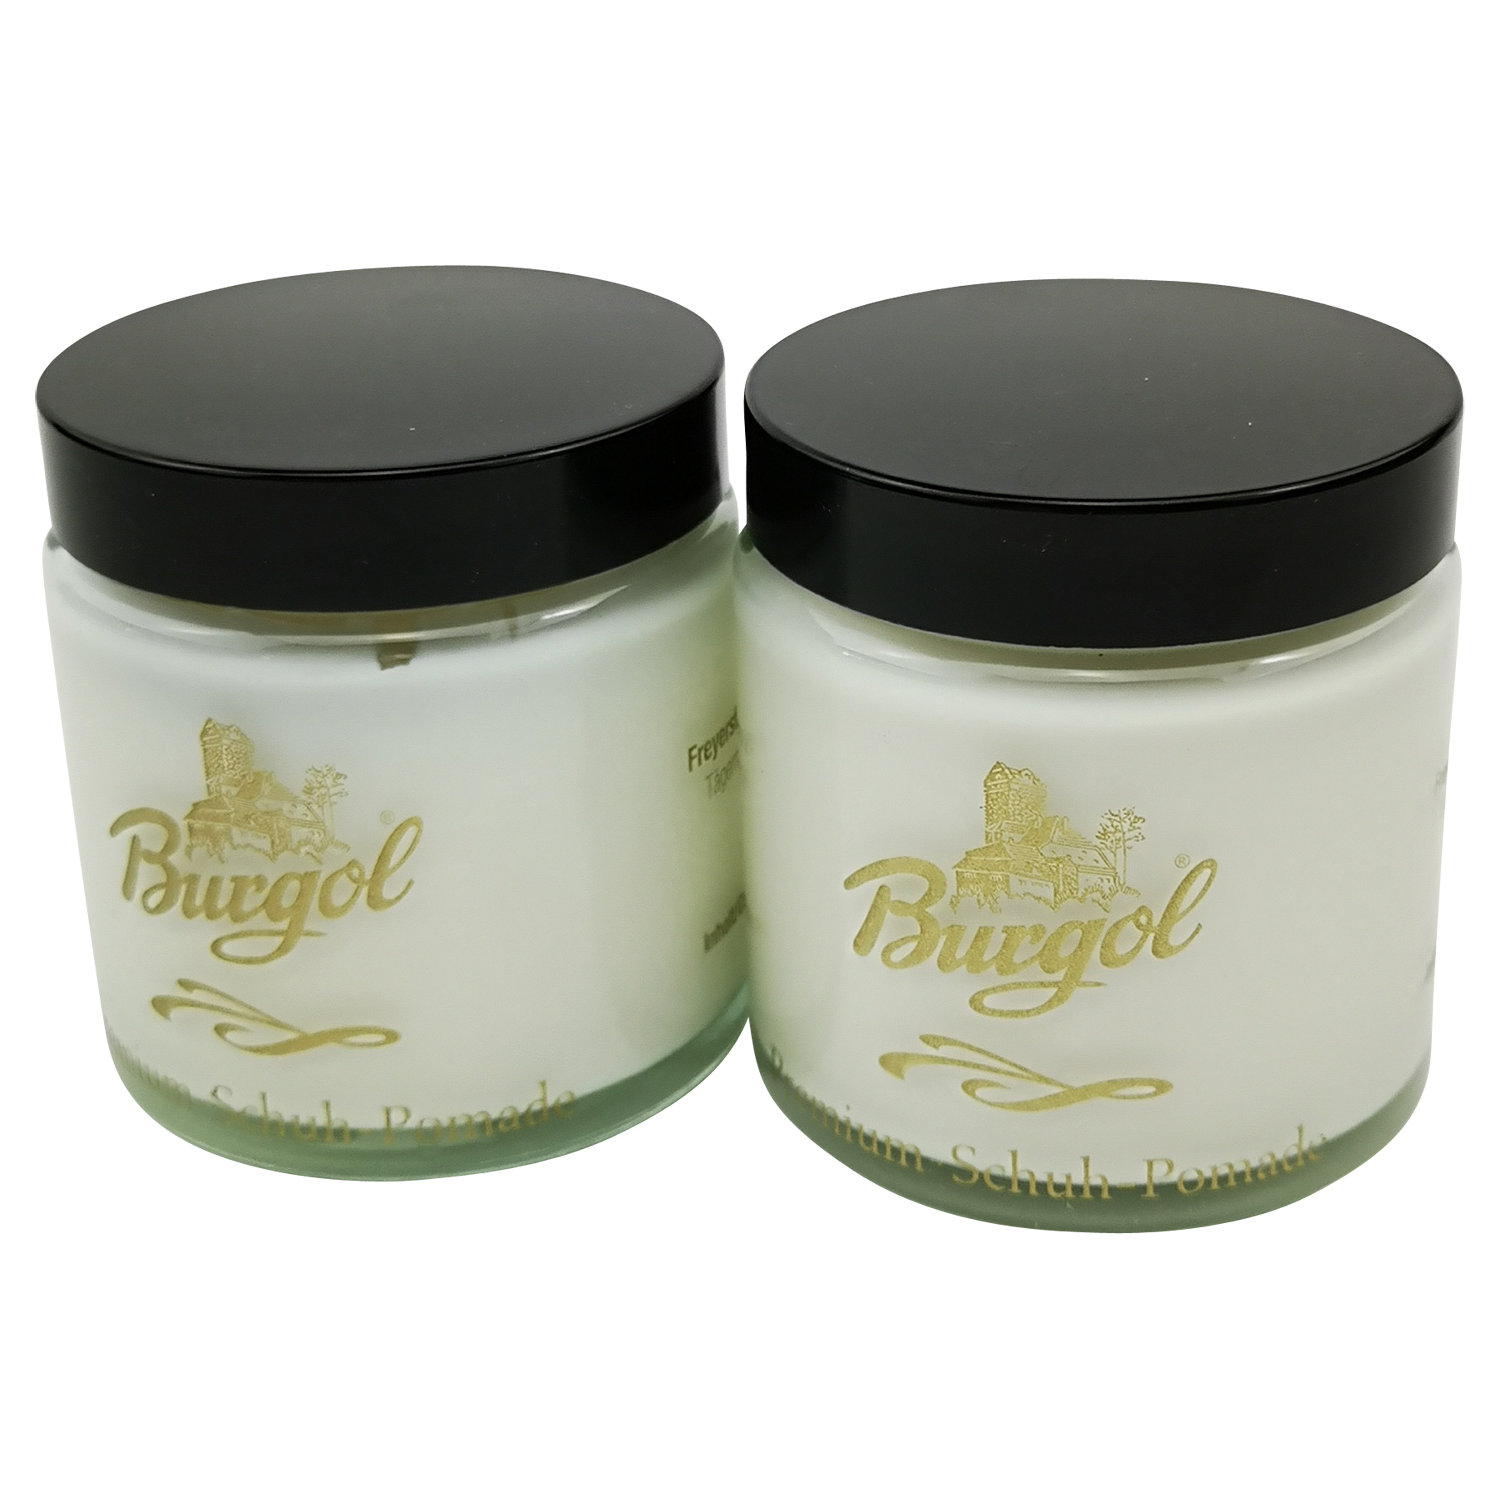 Burgol premium shoe pomade polish colorless